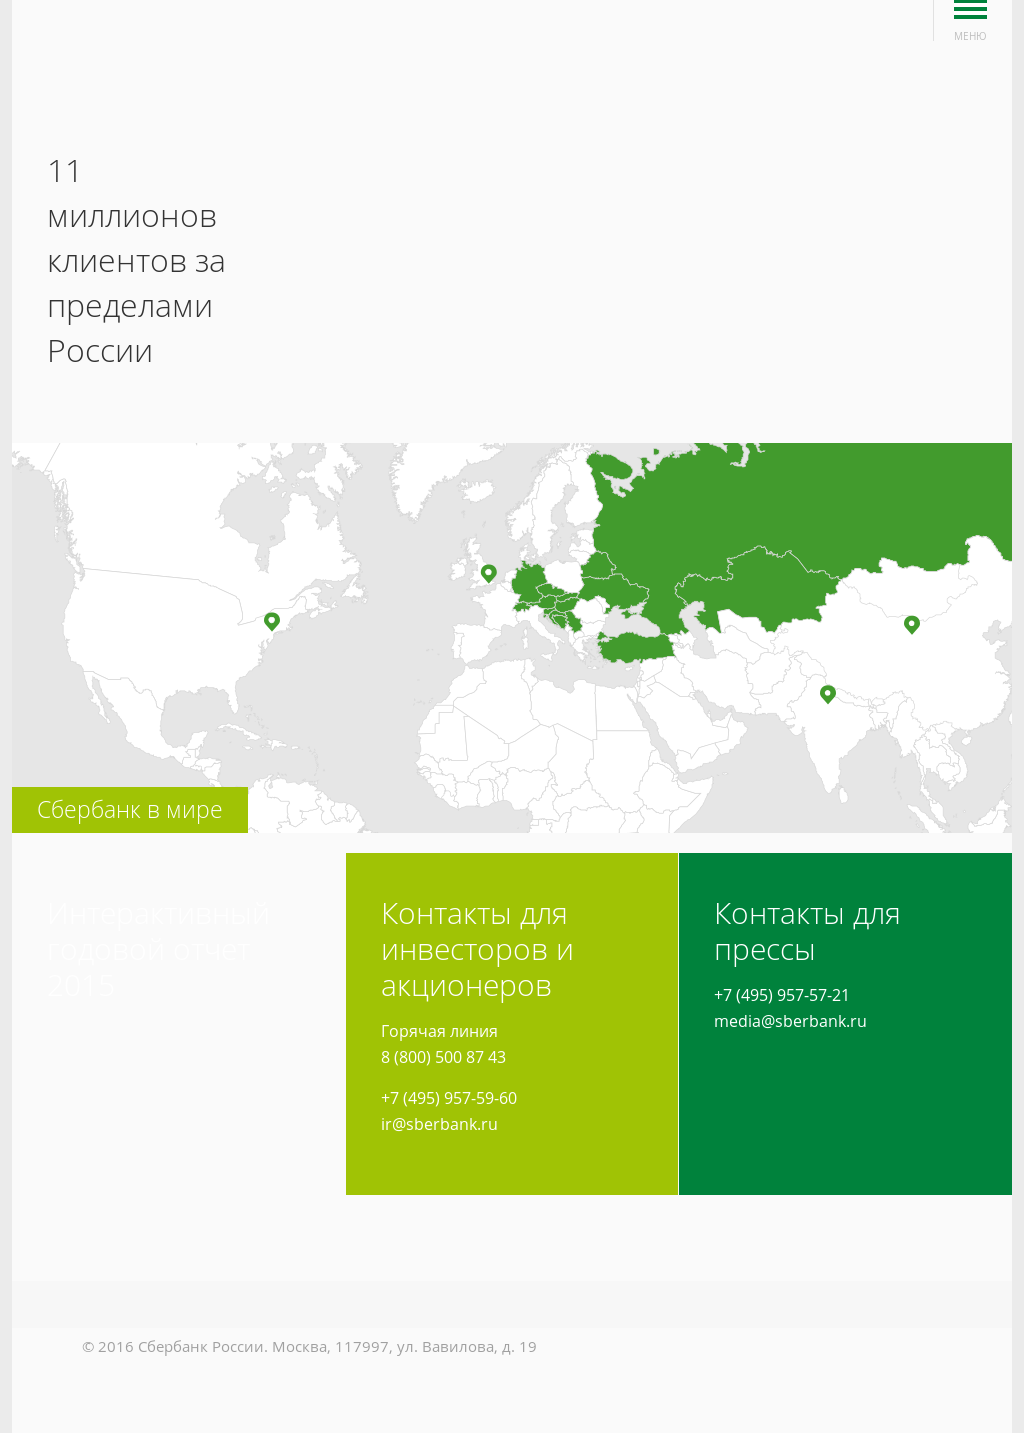 Loans in Sberbank: conditions and reviews 40